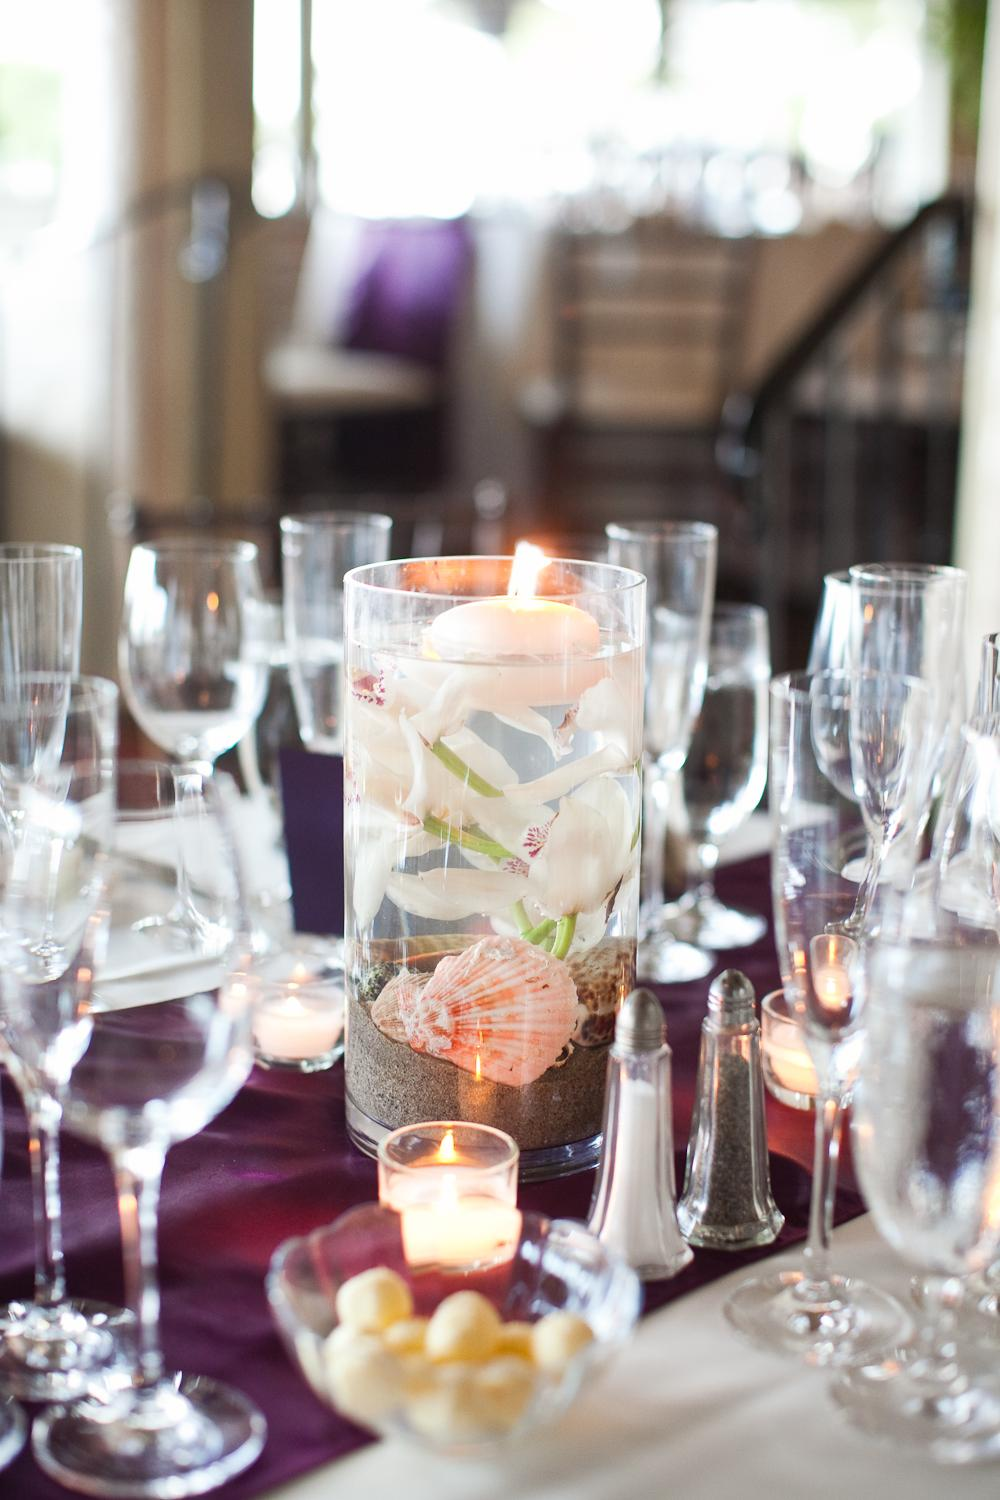 Tags: beach theme wedding, Henry Chen Photography, La Venta Inn,